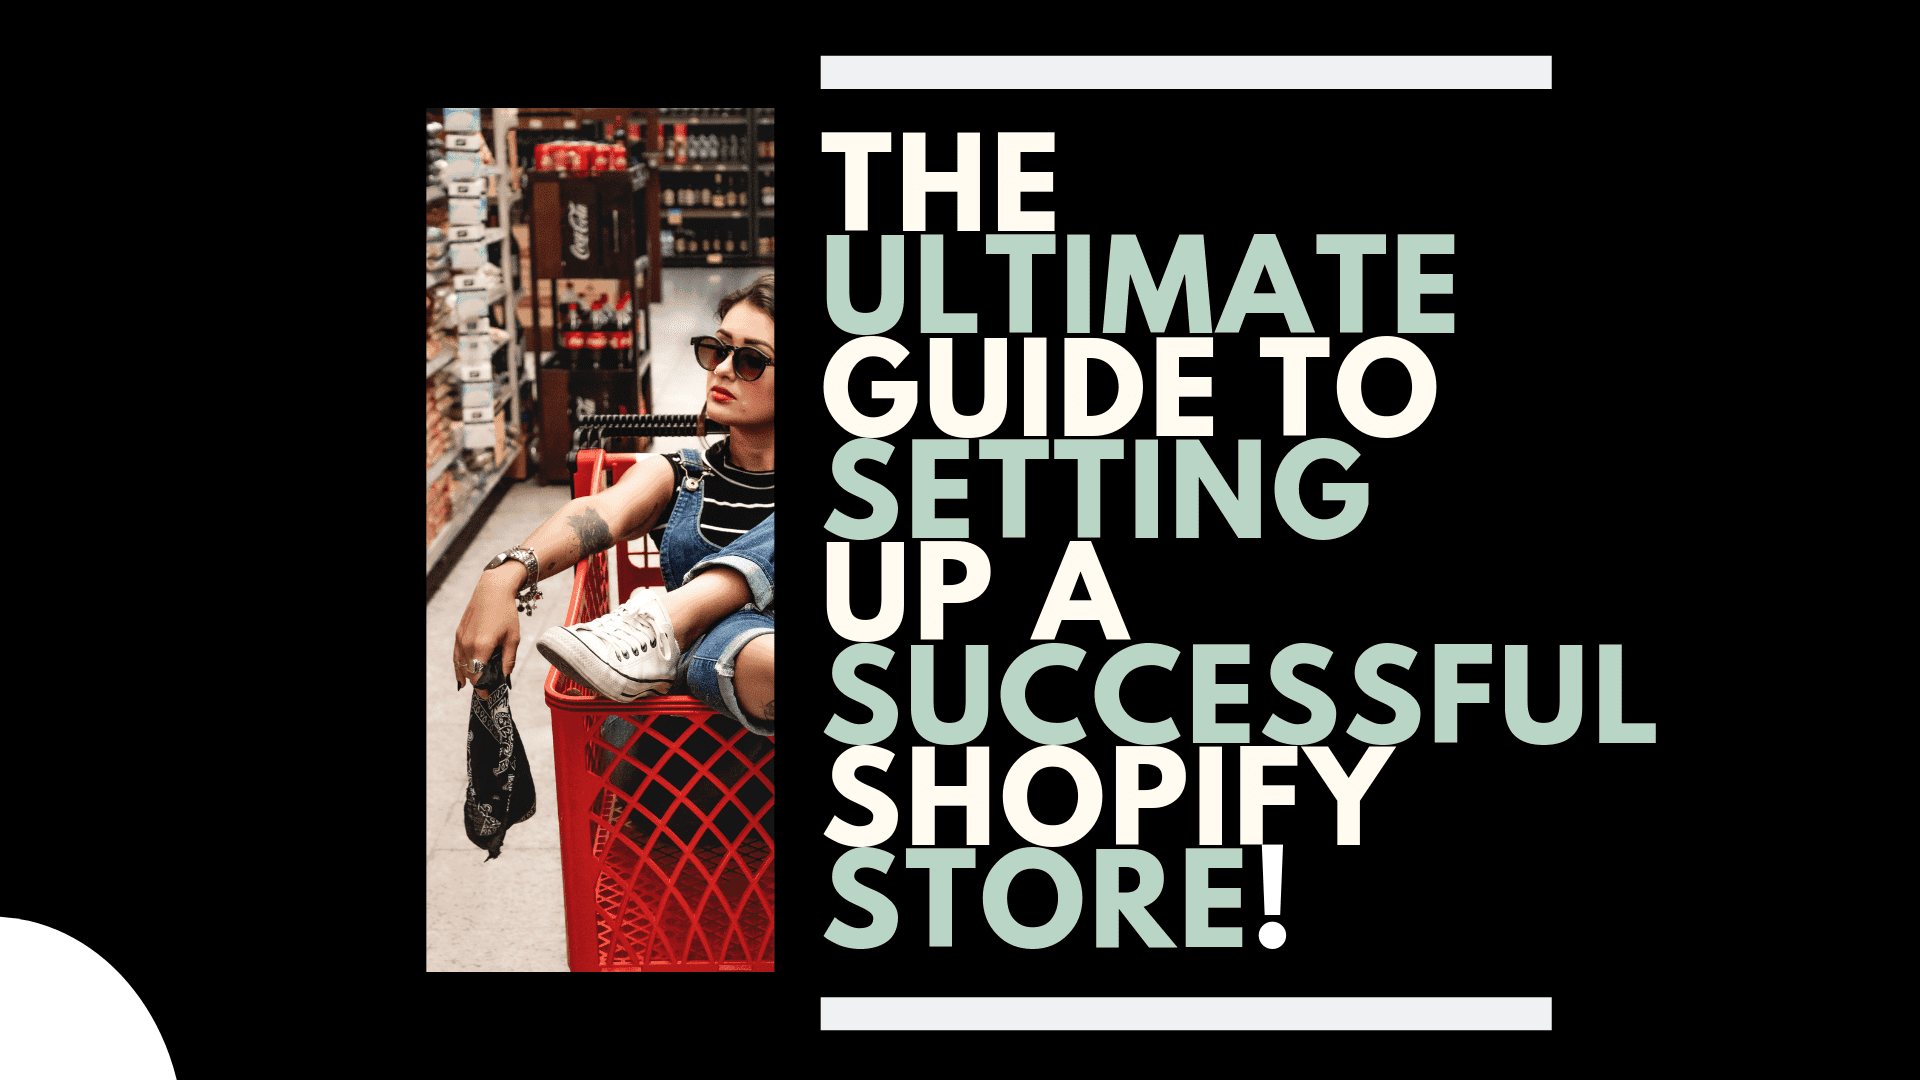 The ultimate guide to setting up a successful and profitable shopify store